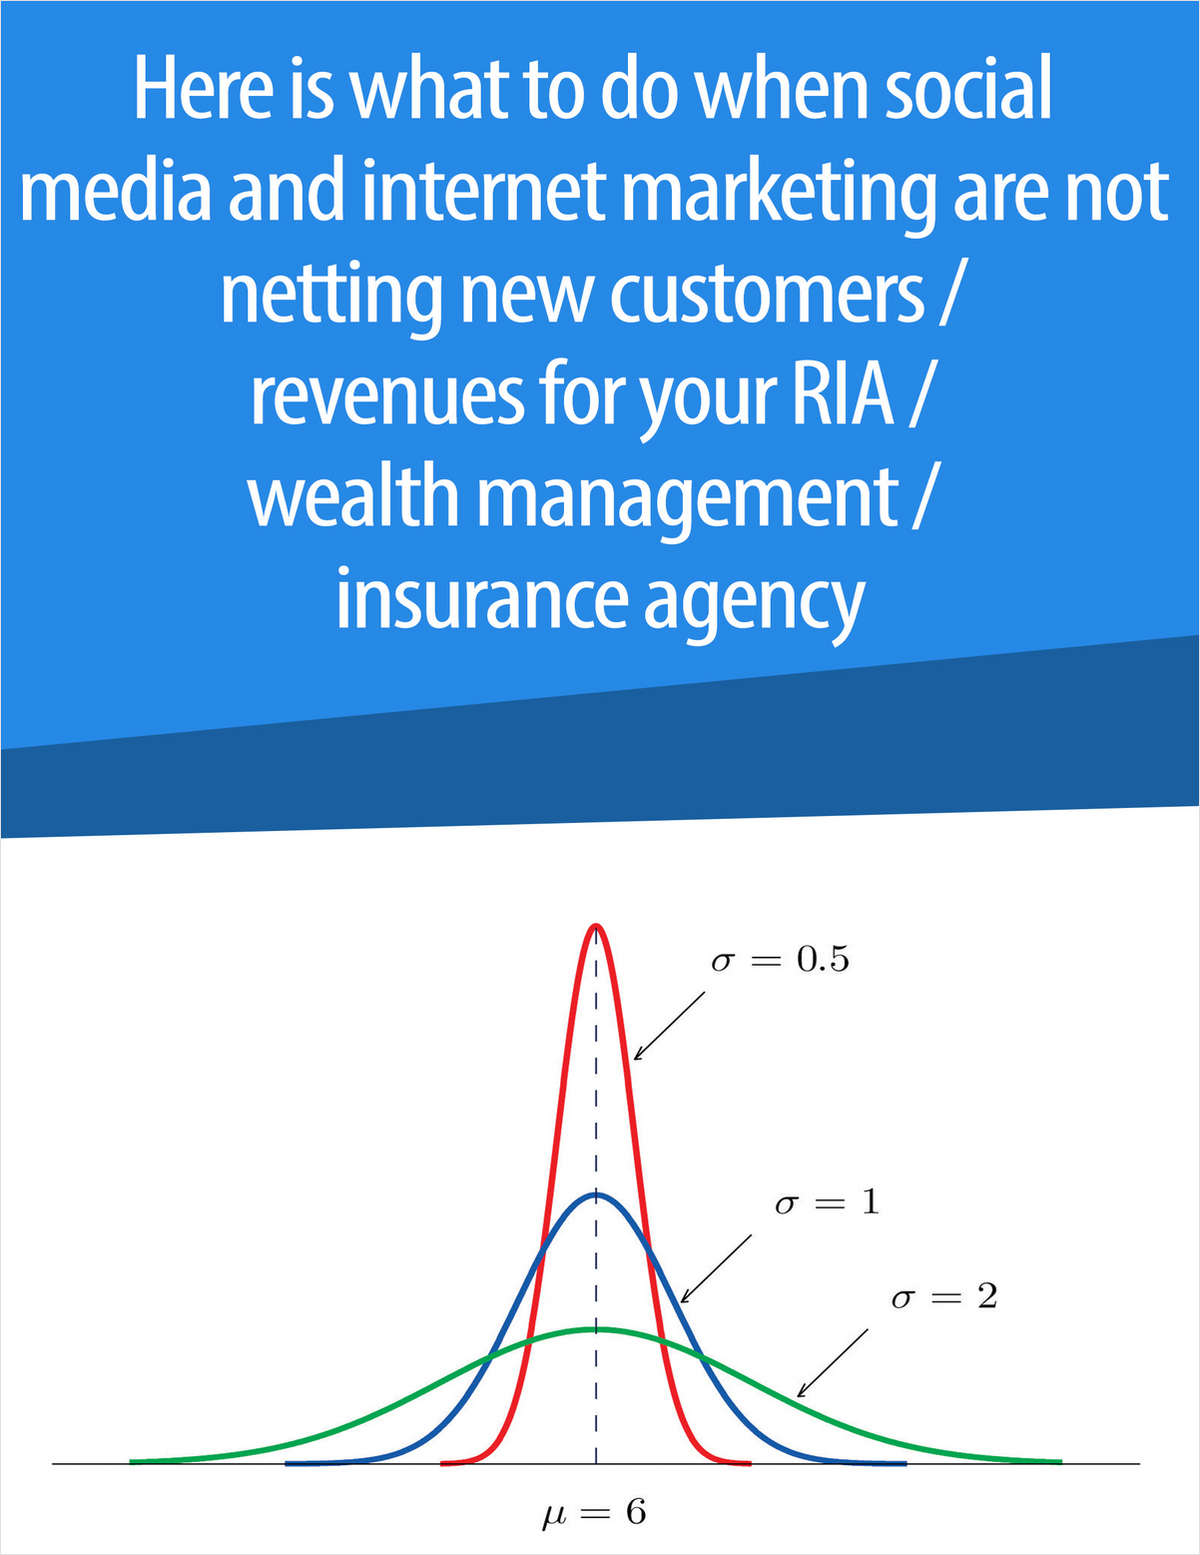 What to Do About Getting New Clients / AUM / Higher Target Premiums for RIAs, Broker/Dealers and Insurance Agencies